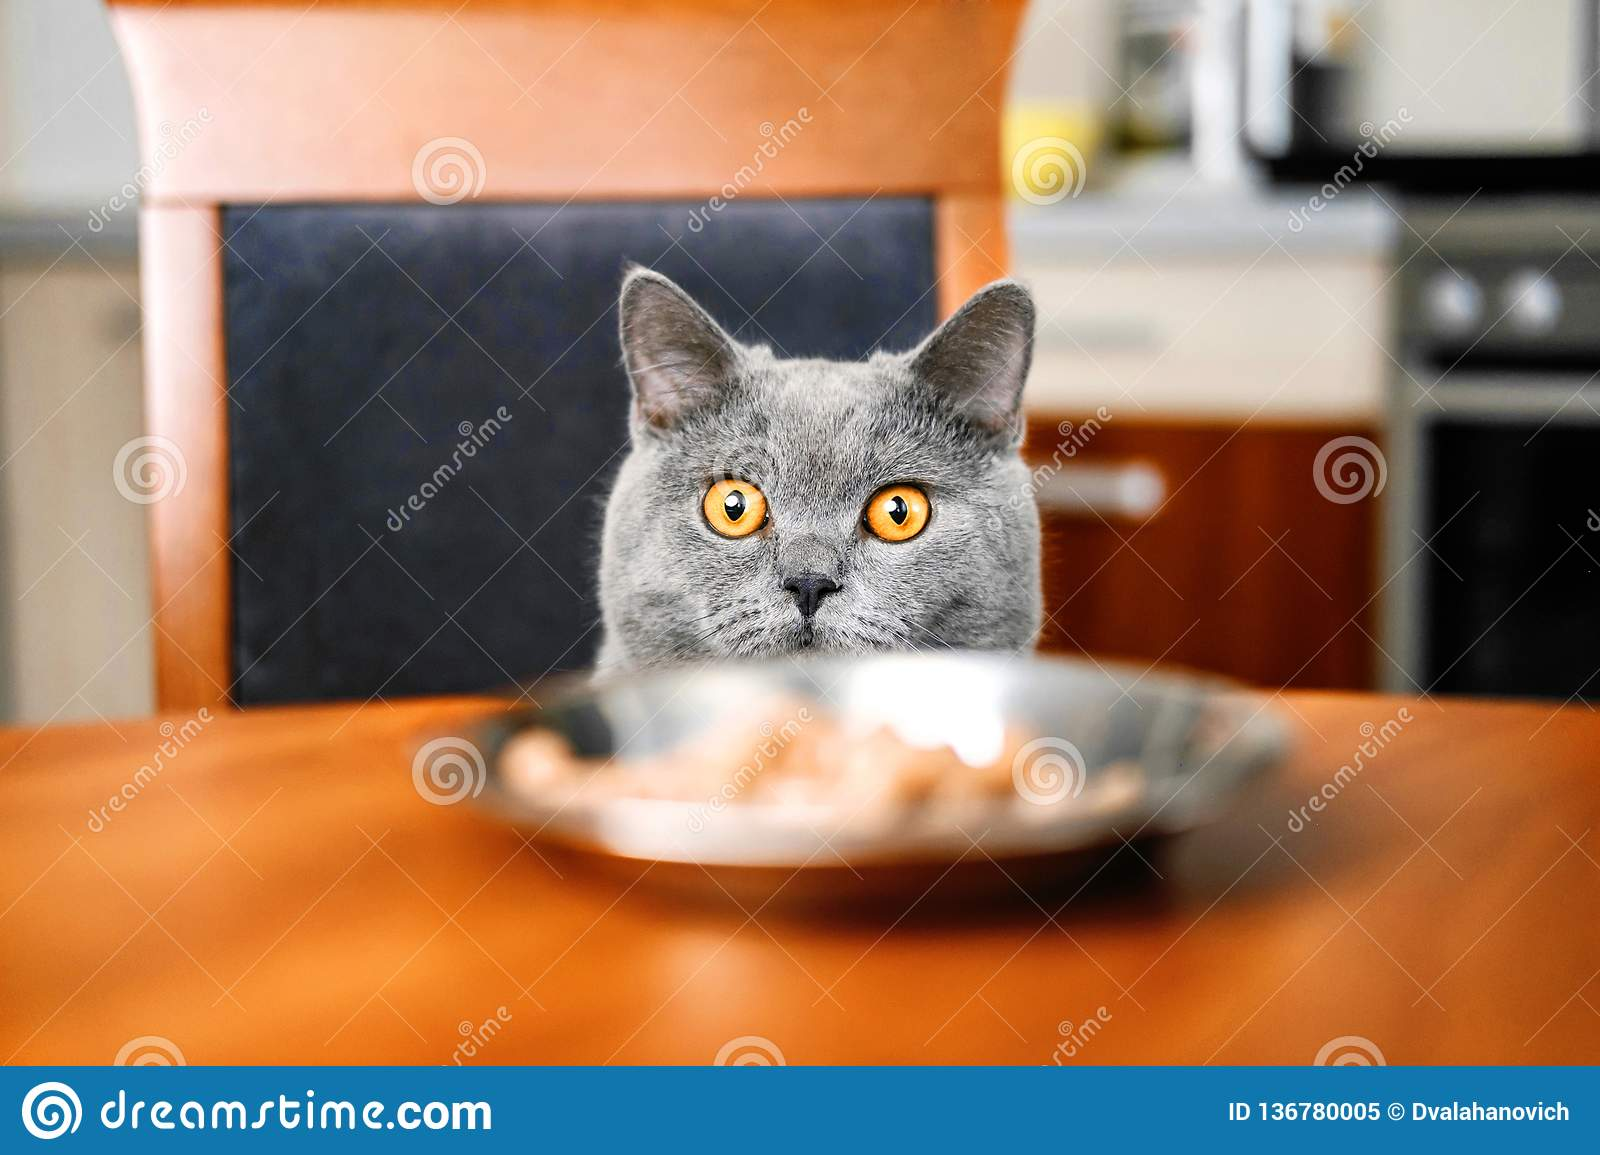 Cat is looking at food at the table